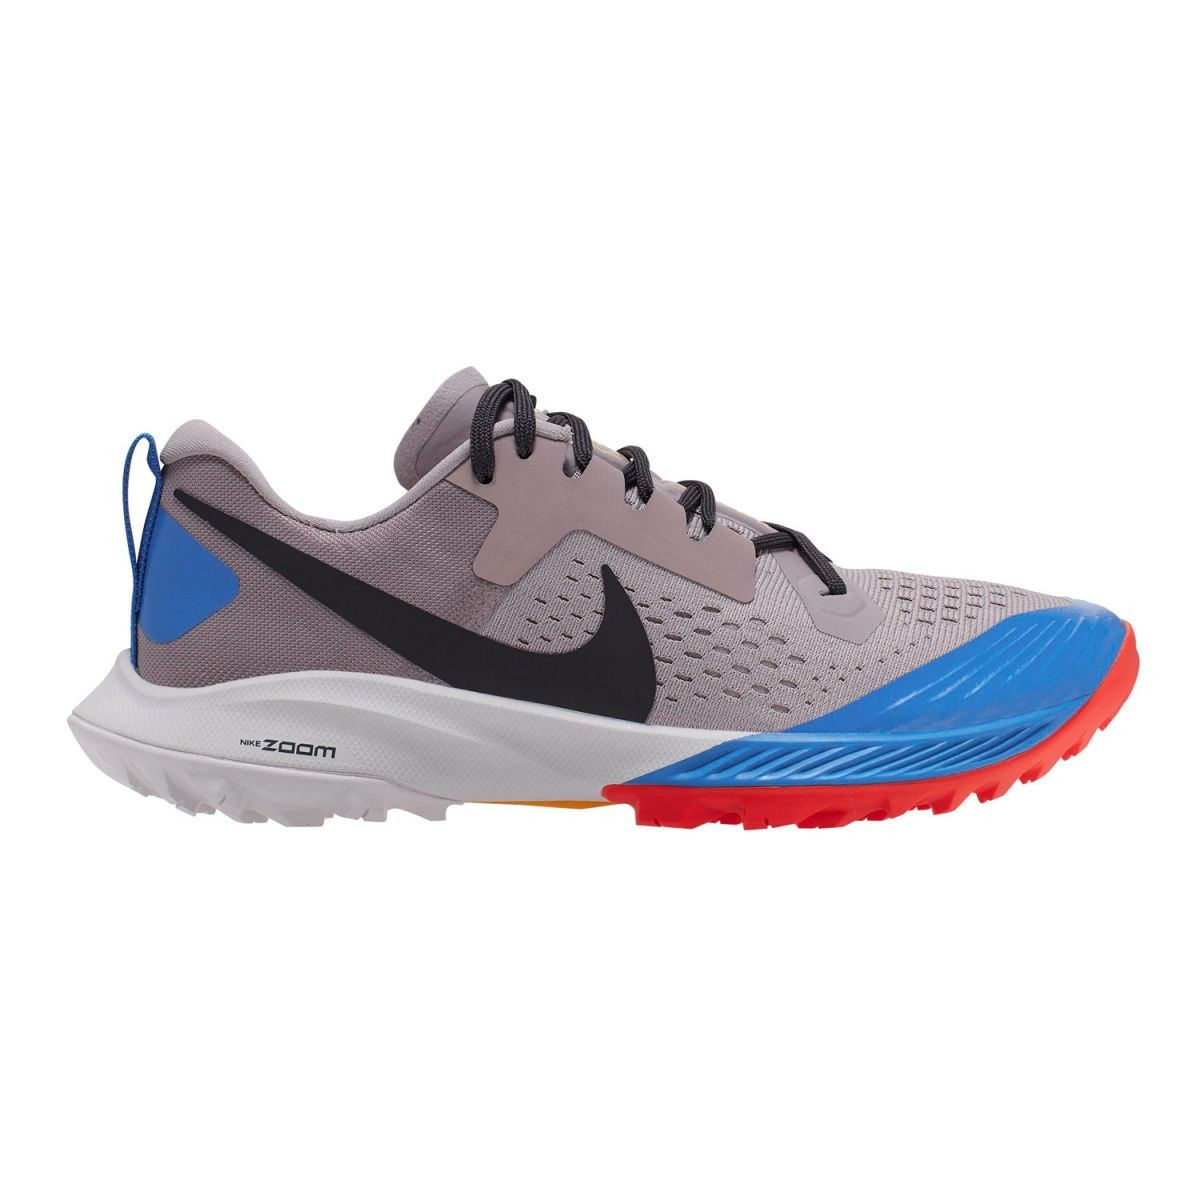 NIKE - AIR ZOOM TERRA KIGER 5 PUMICE/O - WOMEN